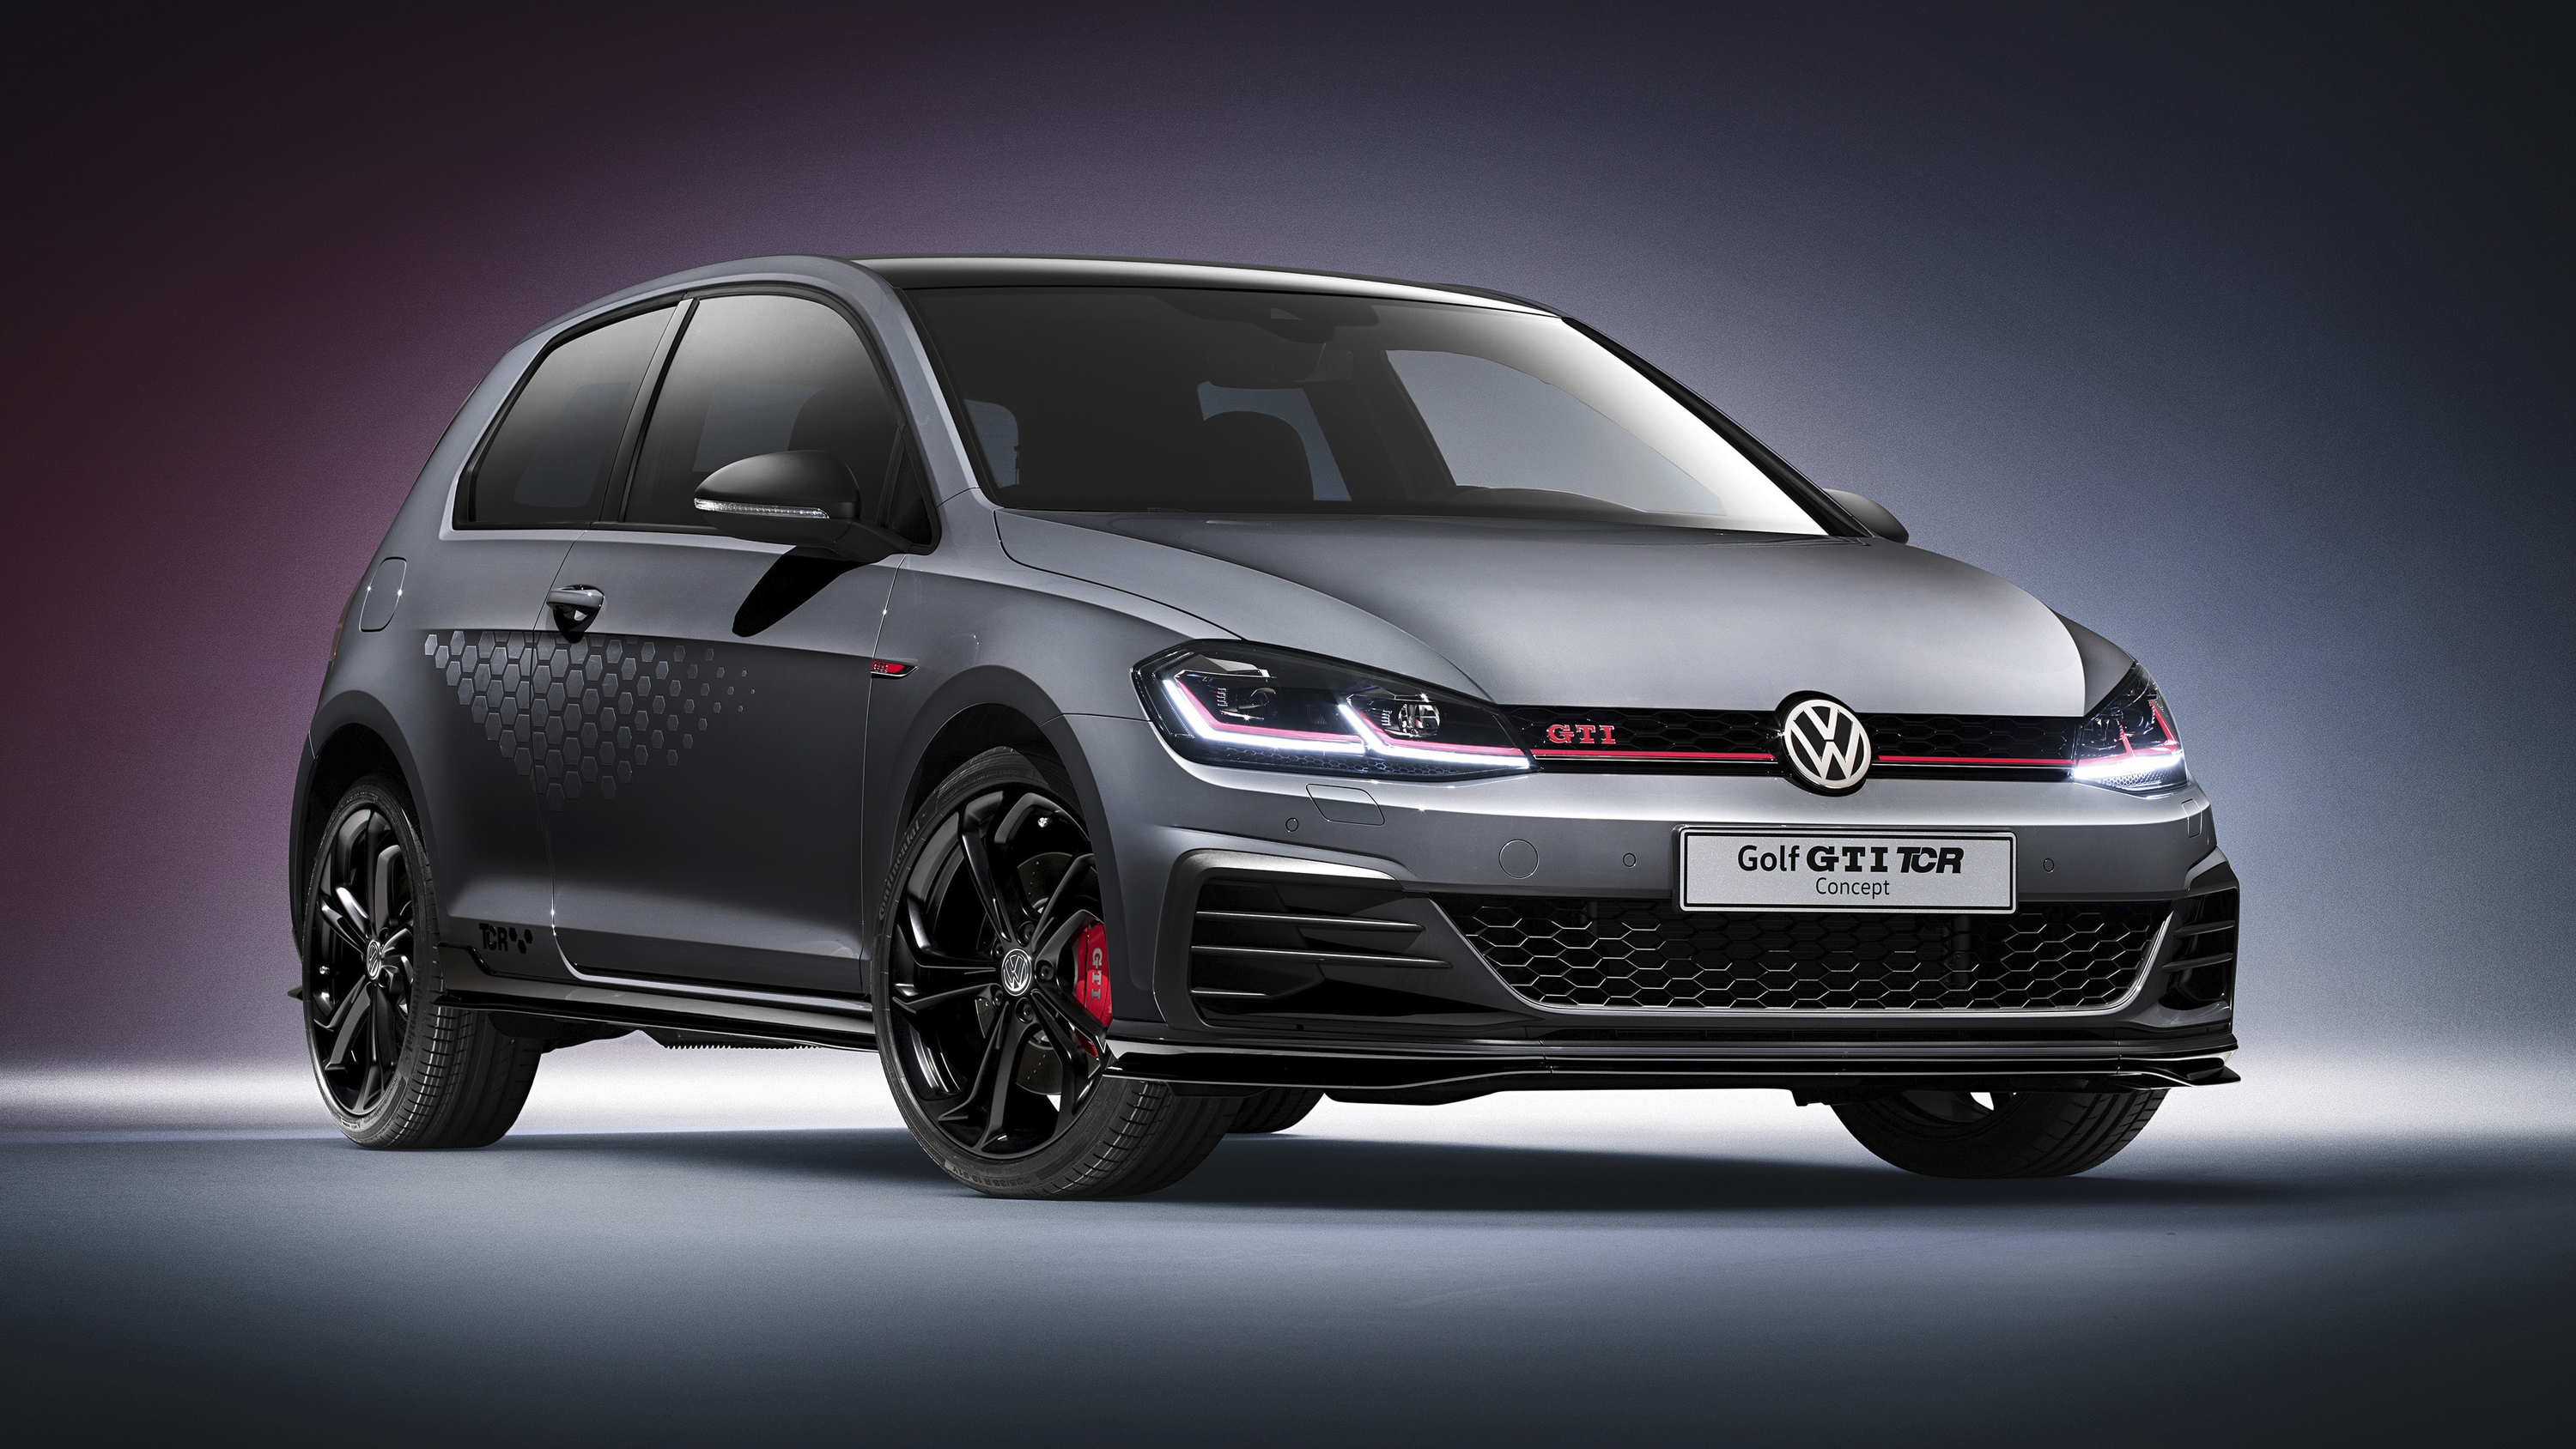 2018 Volkswagen Golf GTI TCR Concept Pictures, Photos, Wallpapers.